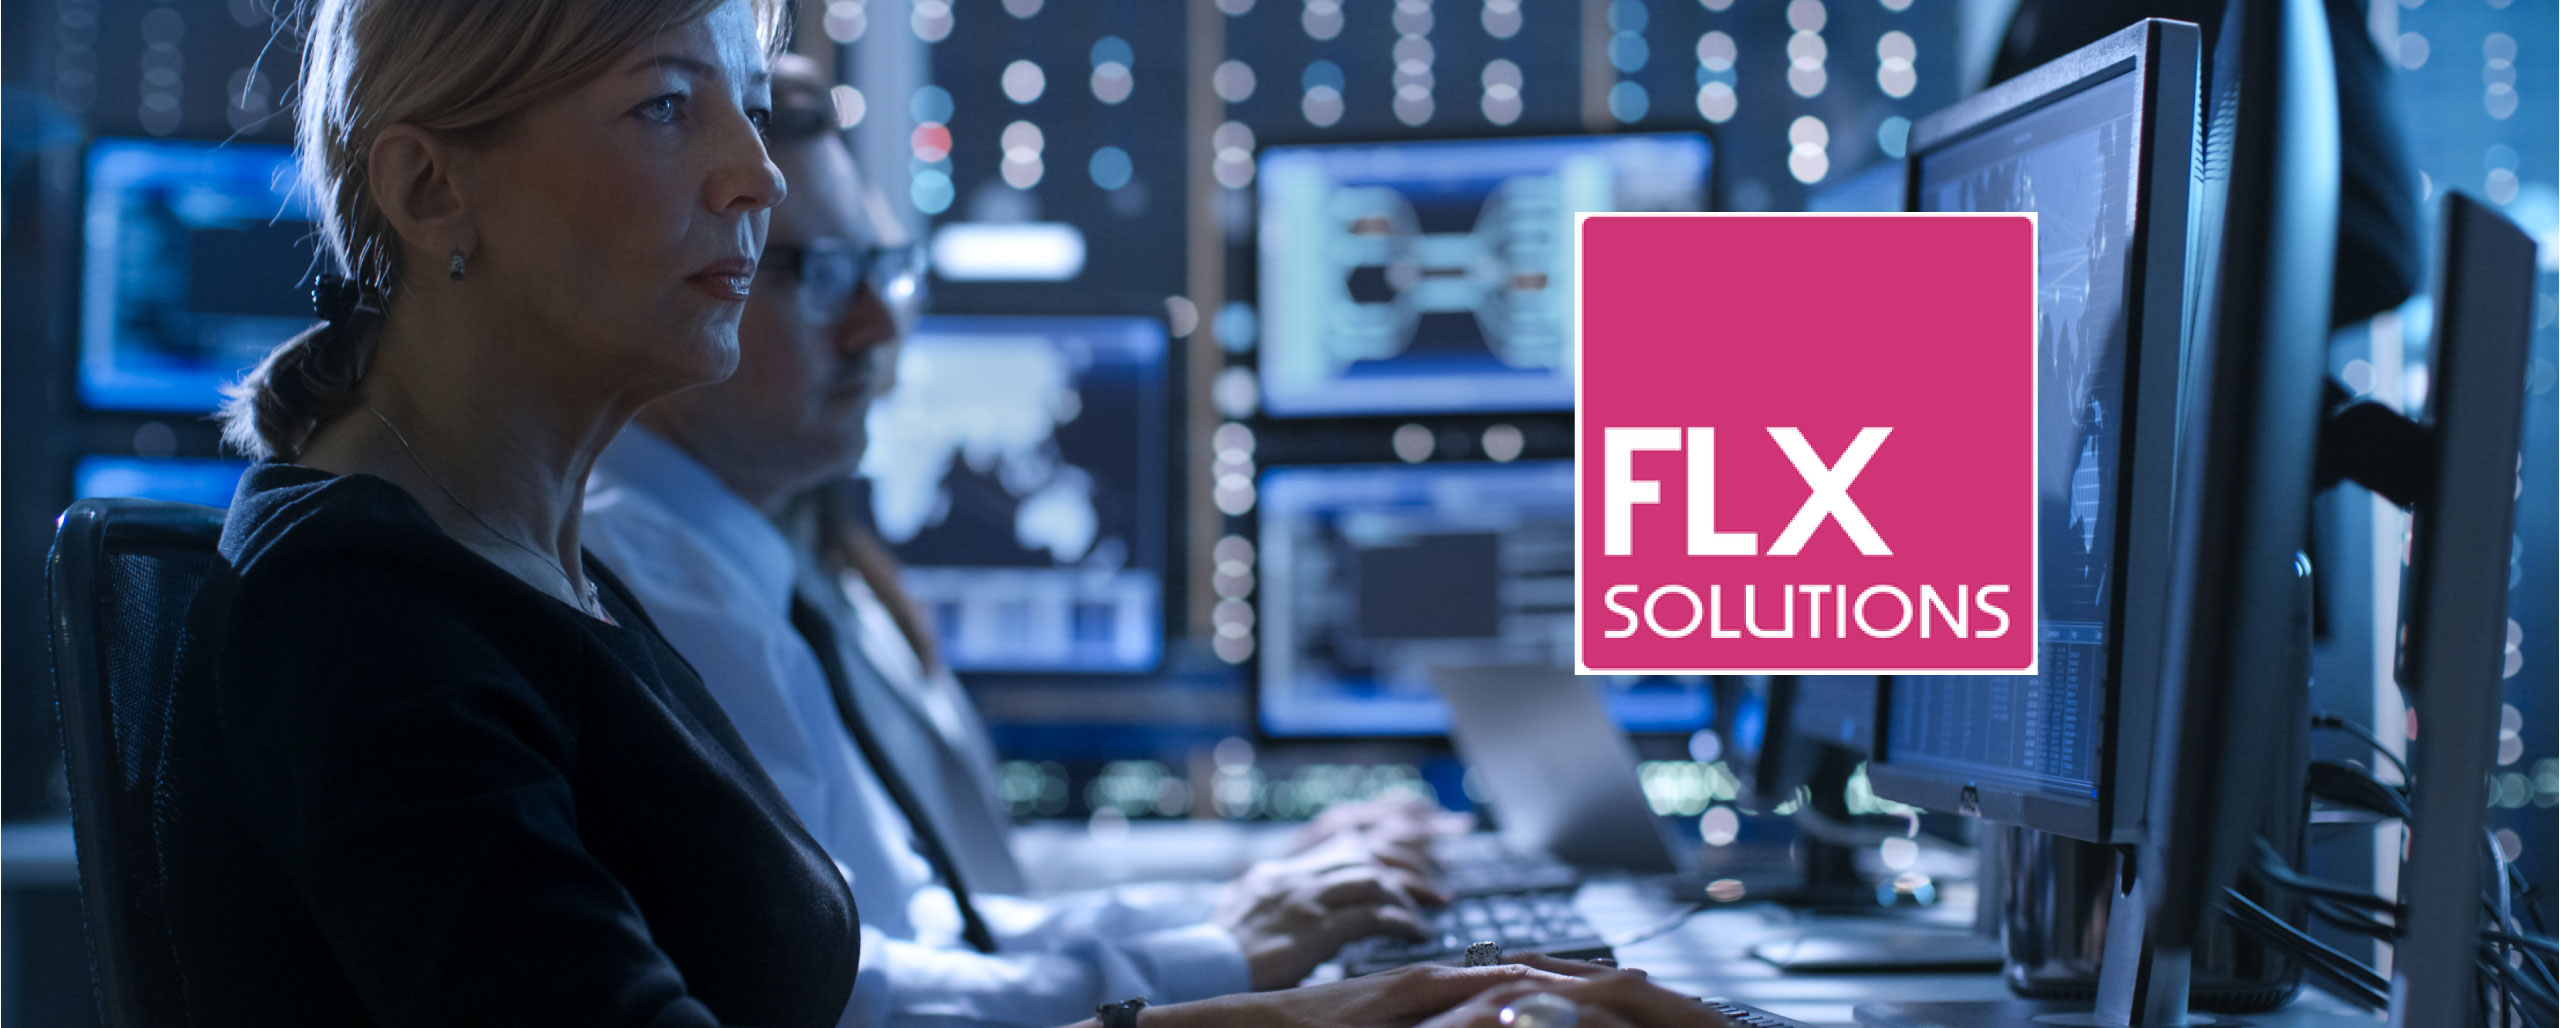 IDC_DIRECTIONS_PORTAL-FLX-Solutions